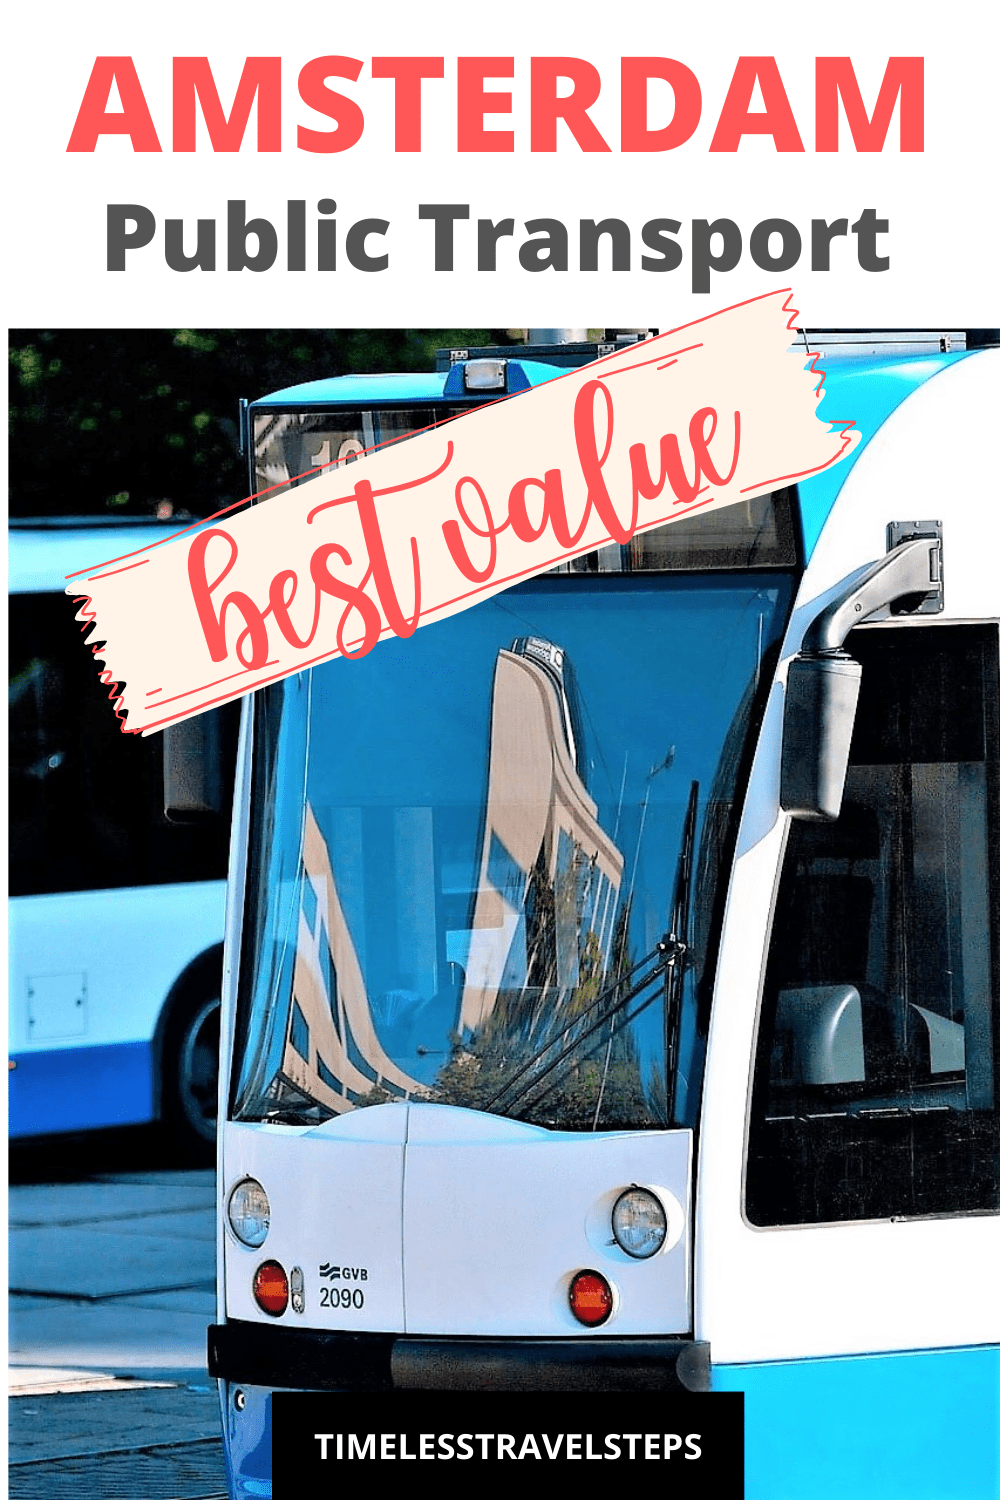 Pre-order your best value public transport ticket for Amsterdam before you leave home to avoid stress and to save time | Public transportation in Amsterdam | GVB transport in Amsterdam | How to get around Amsterdam | Buses in Amsterdam | Trams in Amsterdam | Metro in Amsterdam | Visit Amsterdam | Iamsterdam Card | Best value in transportation tickets in Amsterdam. via @GGeorgina_timelesstravelsteps/